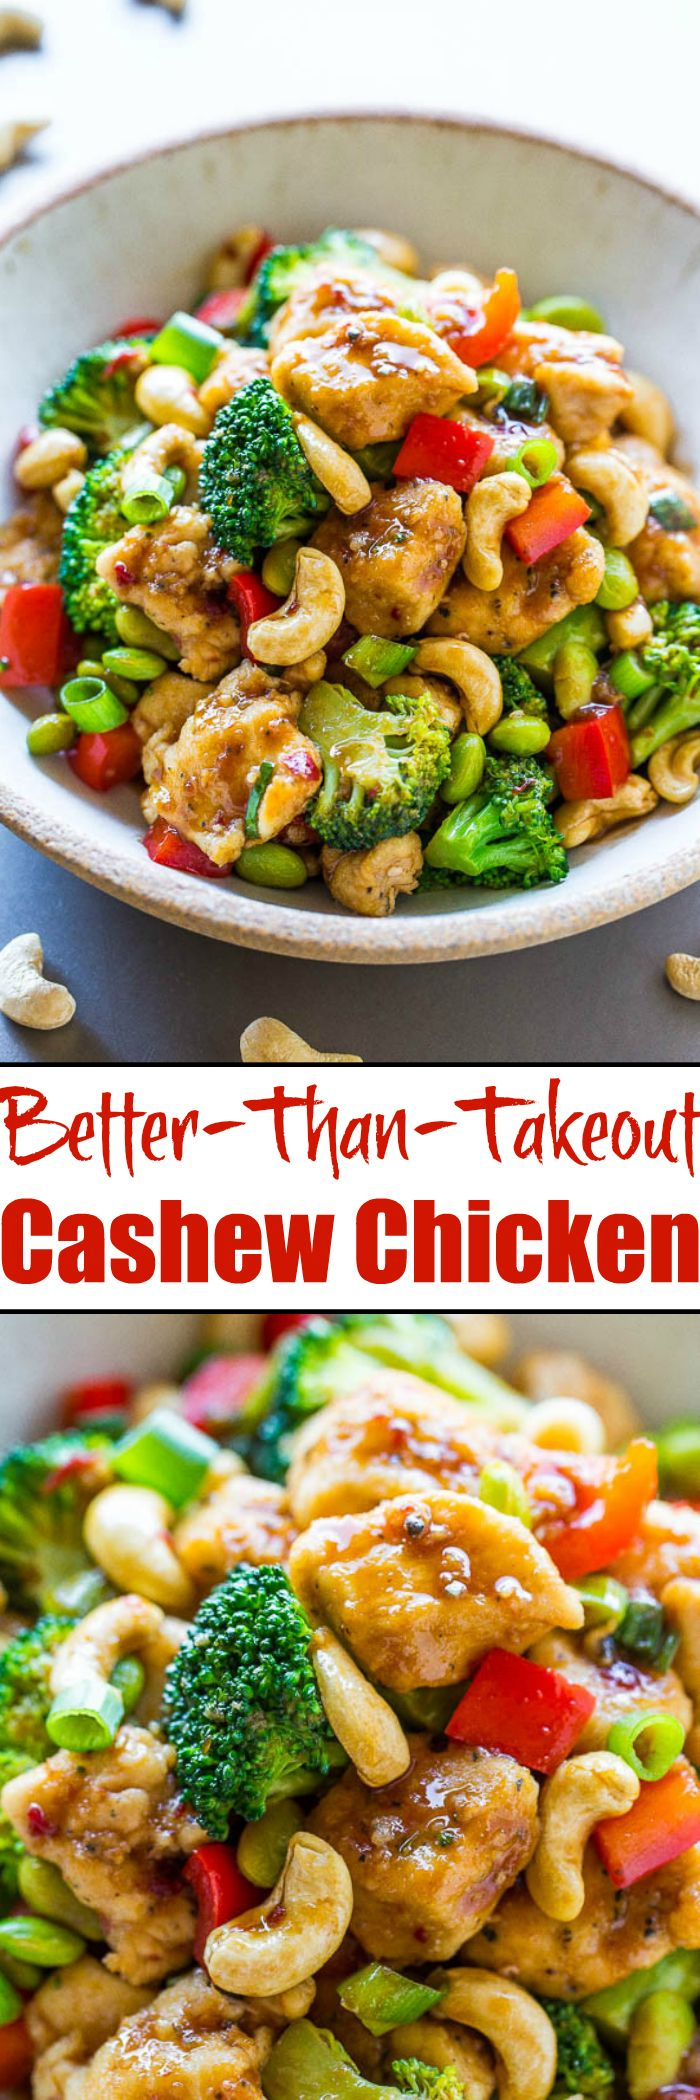 Better-Than-Takeout Cashew Chicken - Juicy chicken, crisp-tender vegetables, and crunchy cashews coated with the best garlicky soy sauce!! Skip takeout and make your own restaurant-quality meal that's easy, ready in 20 minutes, and healthier!!